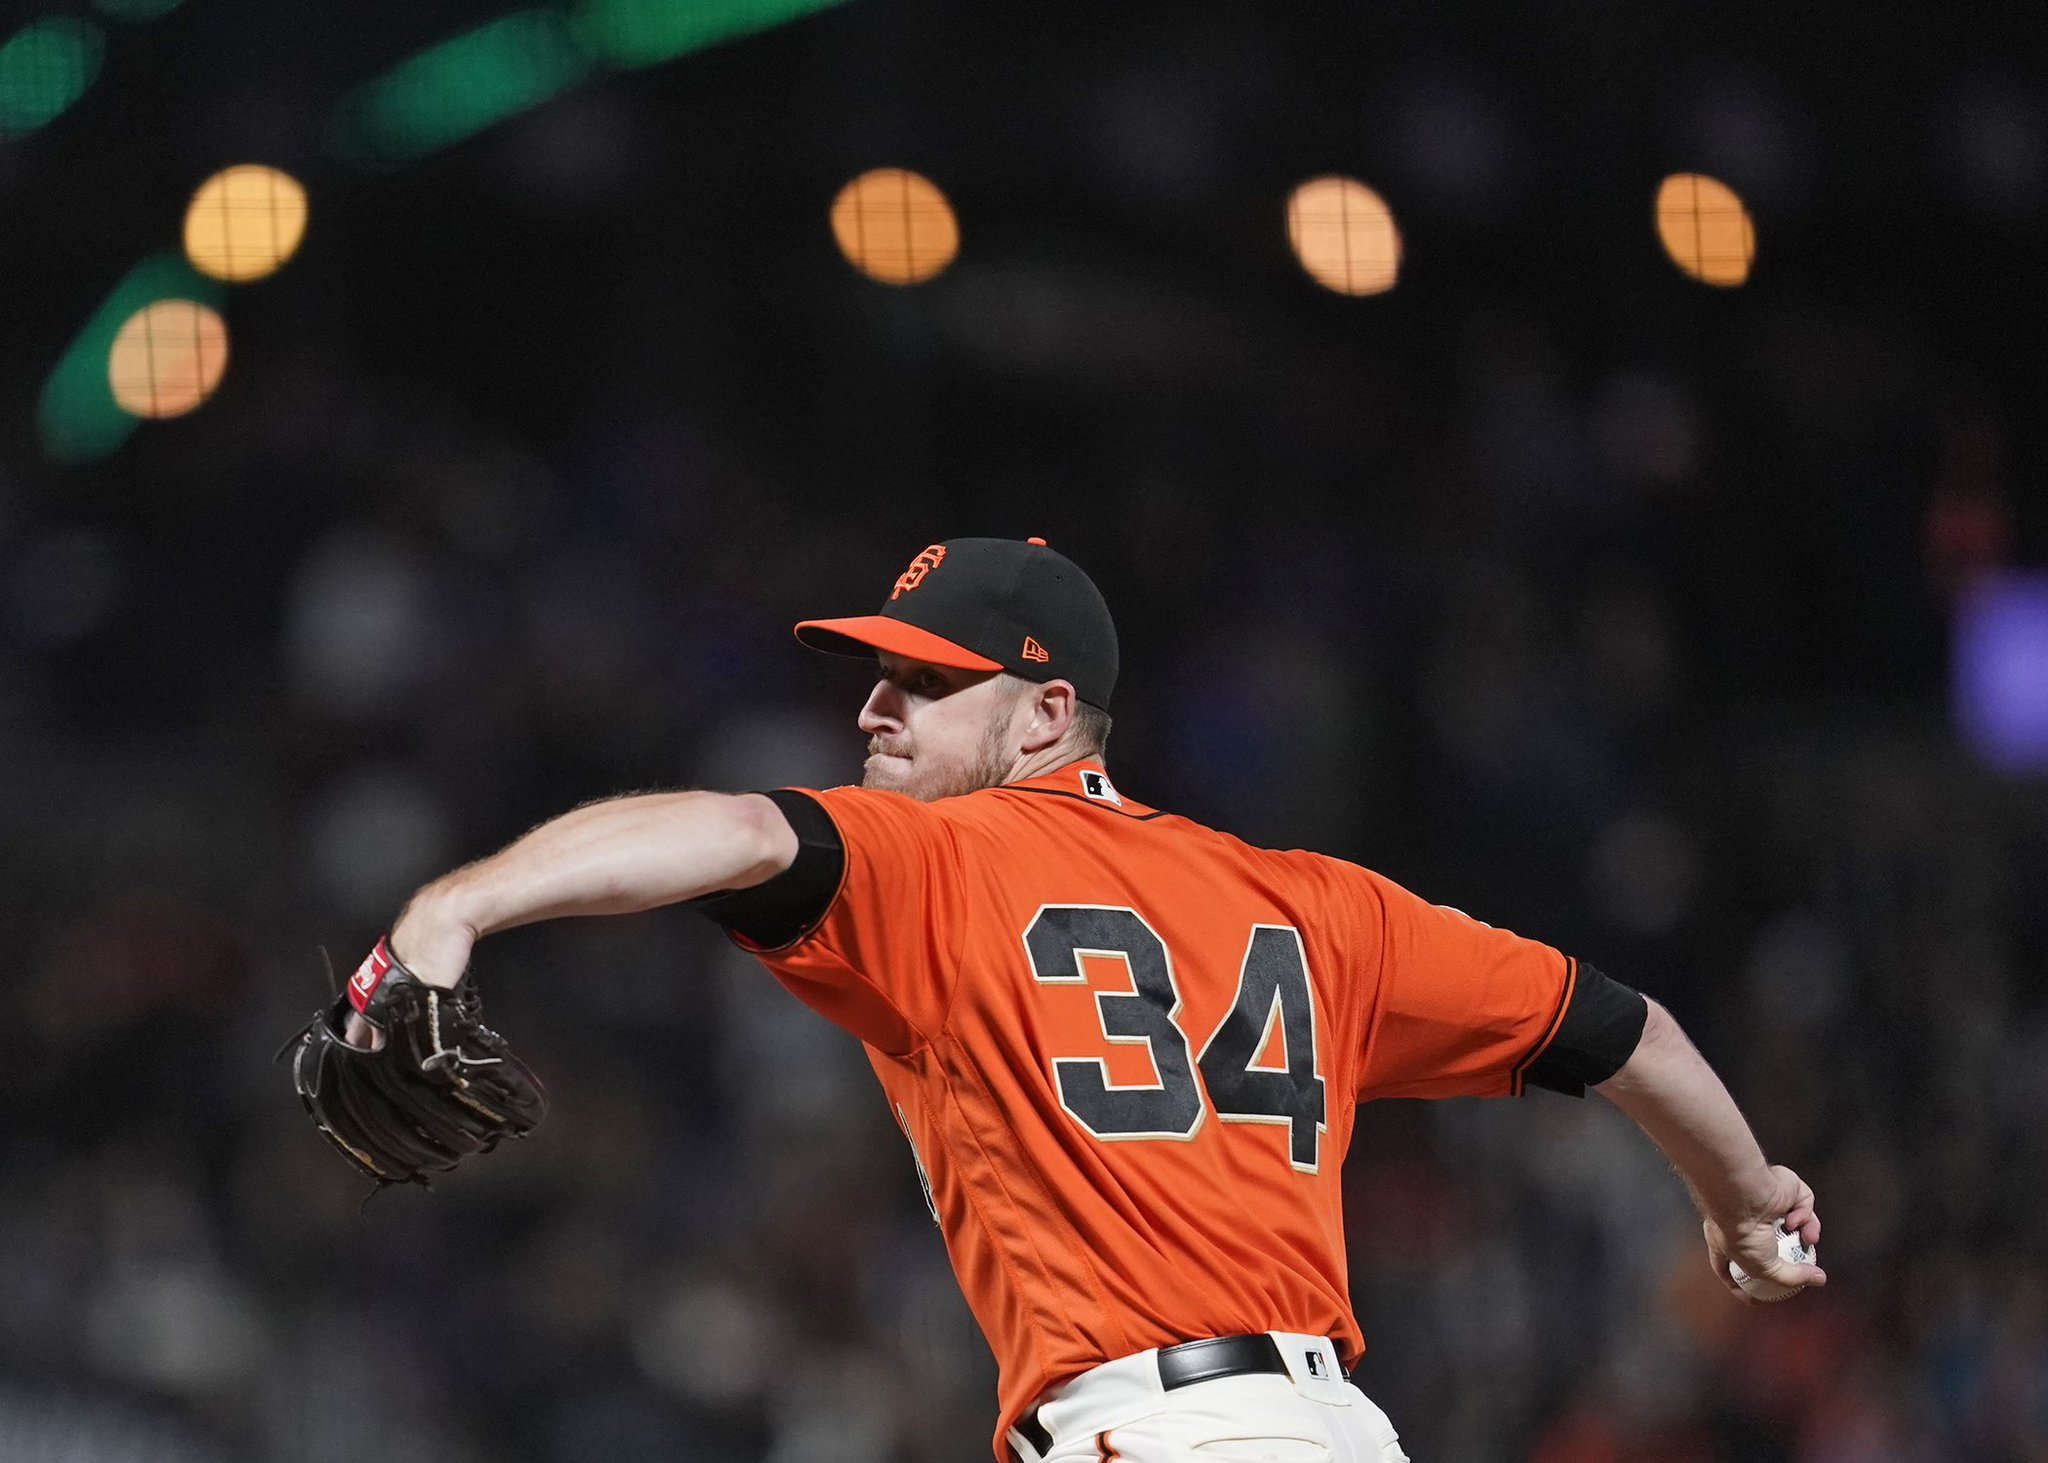 ✅ 114 pitches ✅ 2 hits ✅ complete game shutout  Nice Friday night, @cstratton34 ������  #SFGiants https://t.co/6ccuZjj6zB